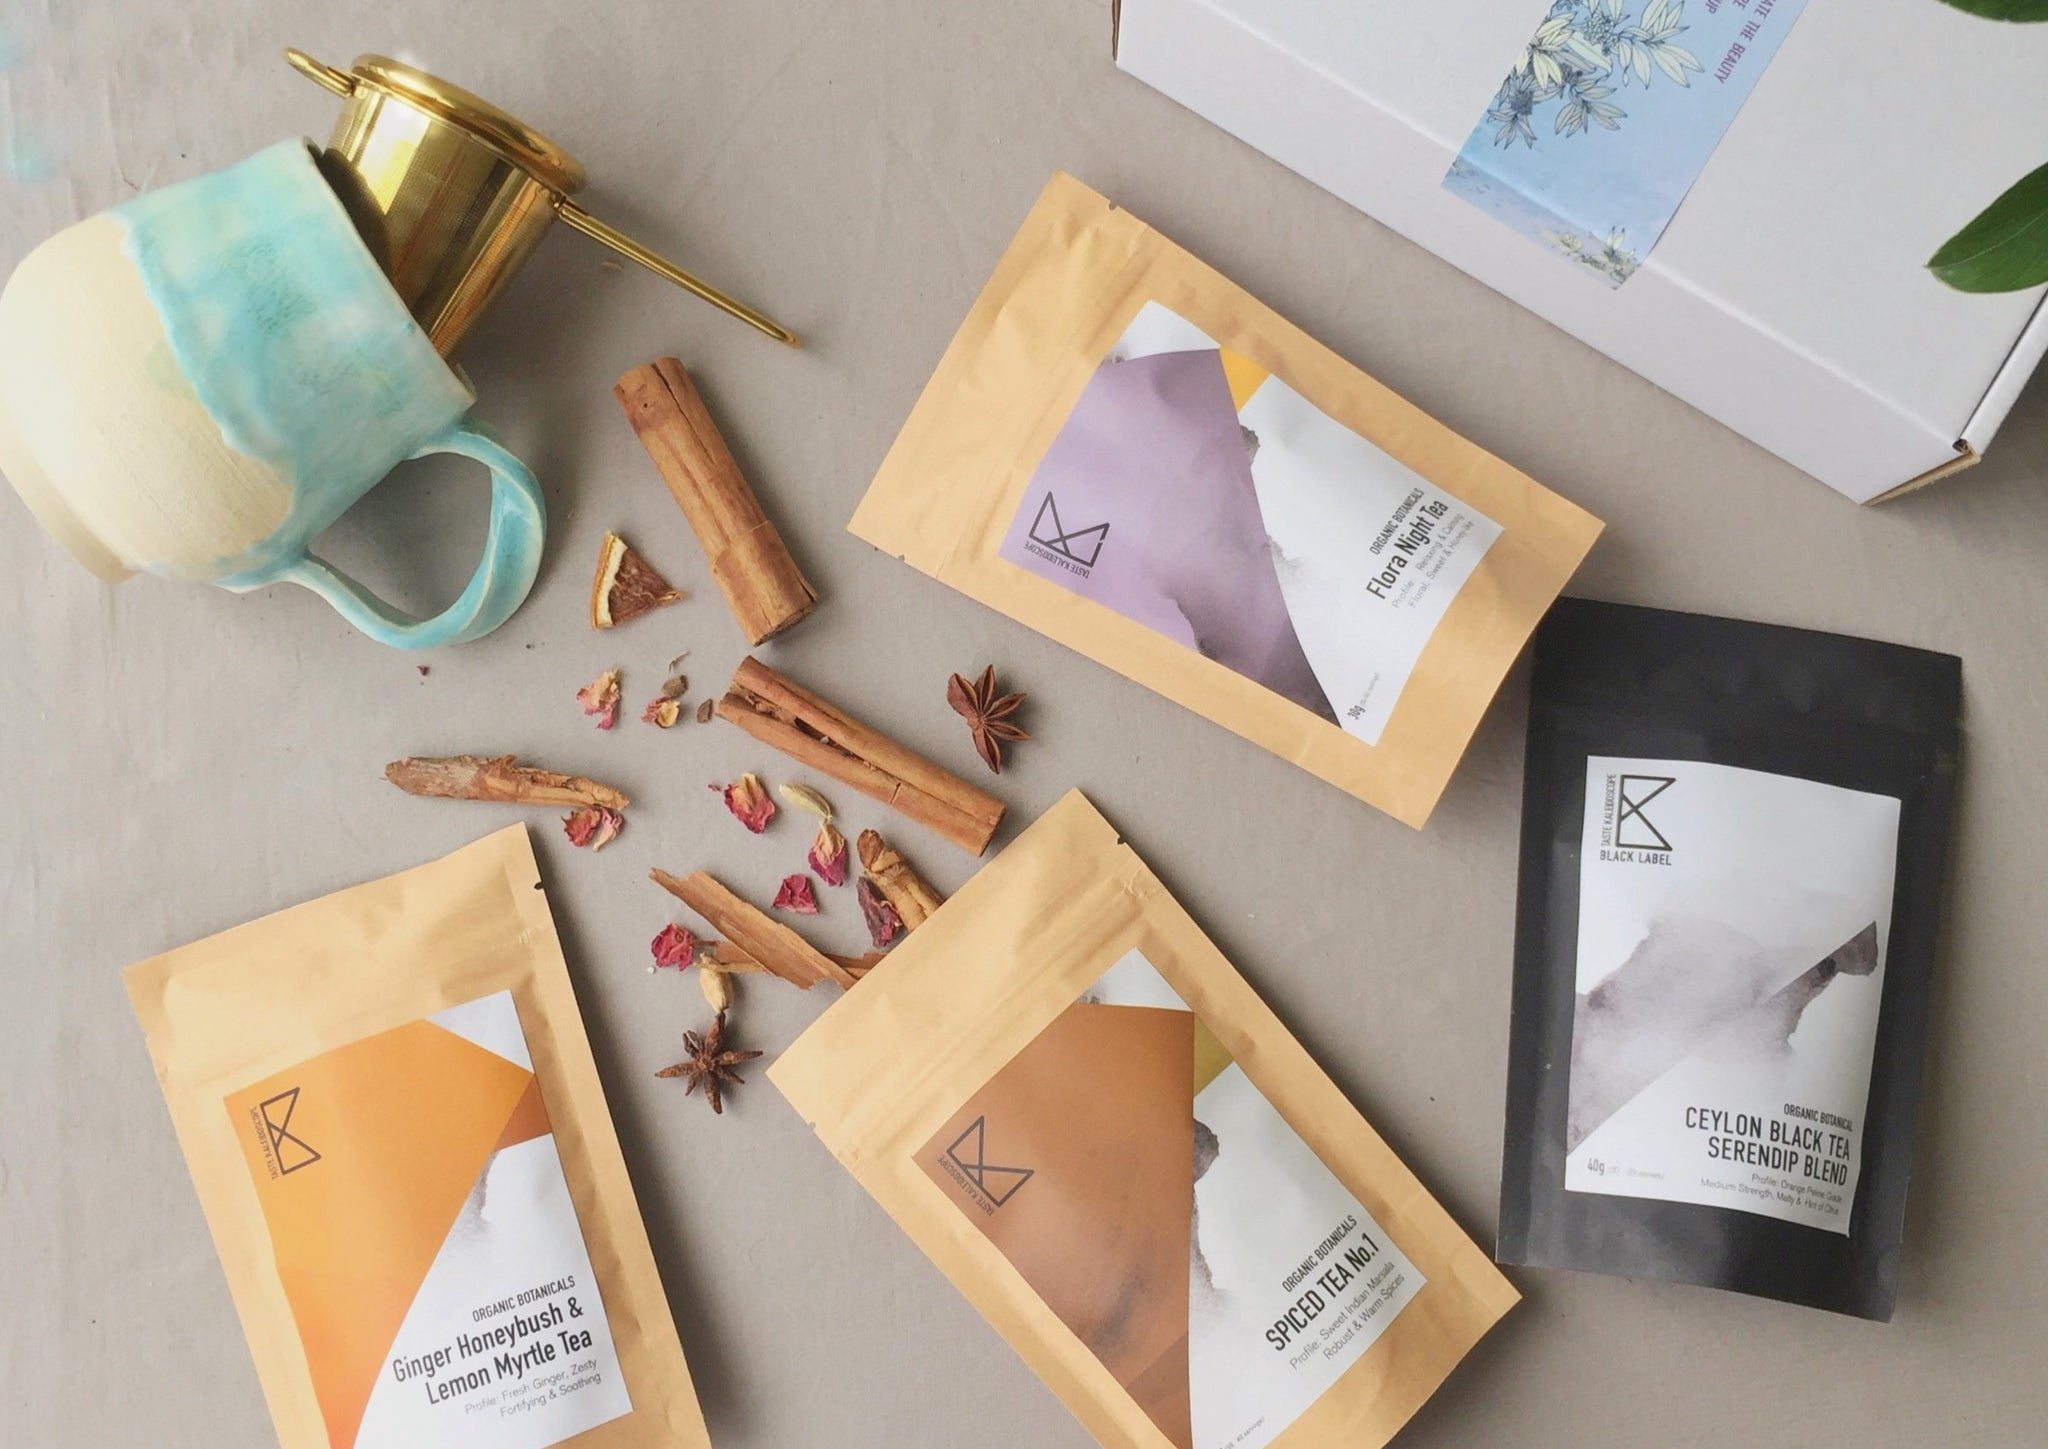 Best Seller Gift Set [4 Most Popular Teas in 2020 + Infuser + Recipe e-Book]